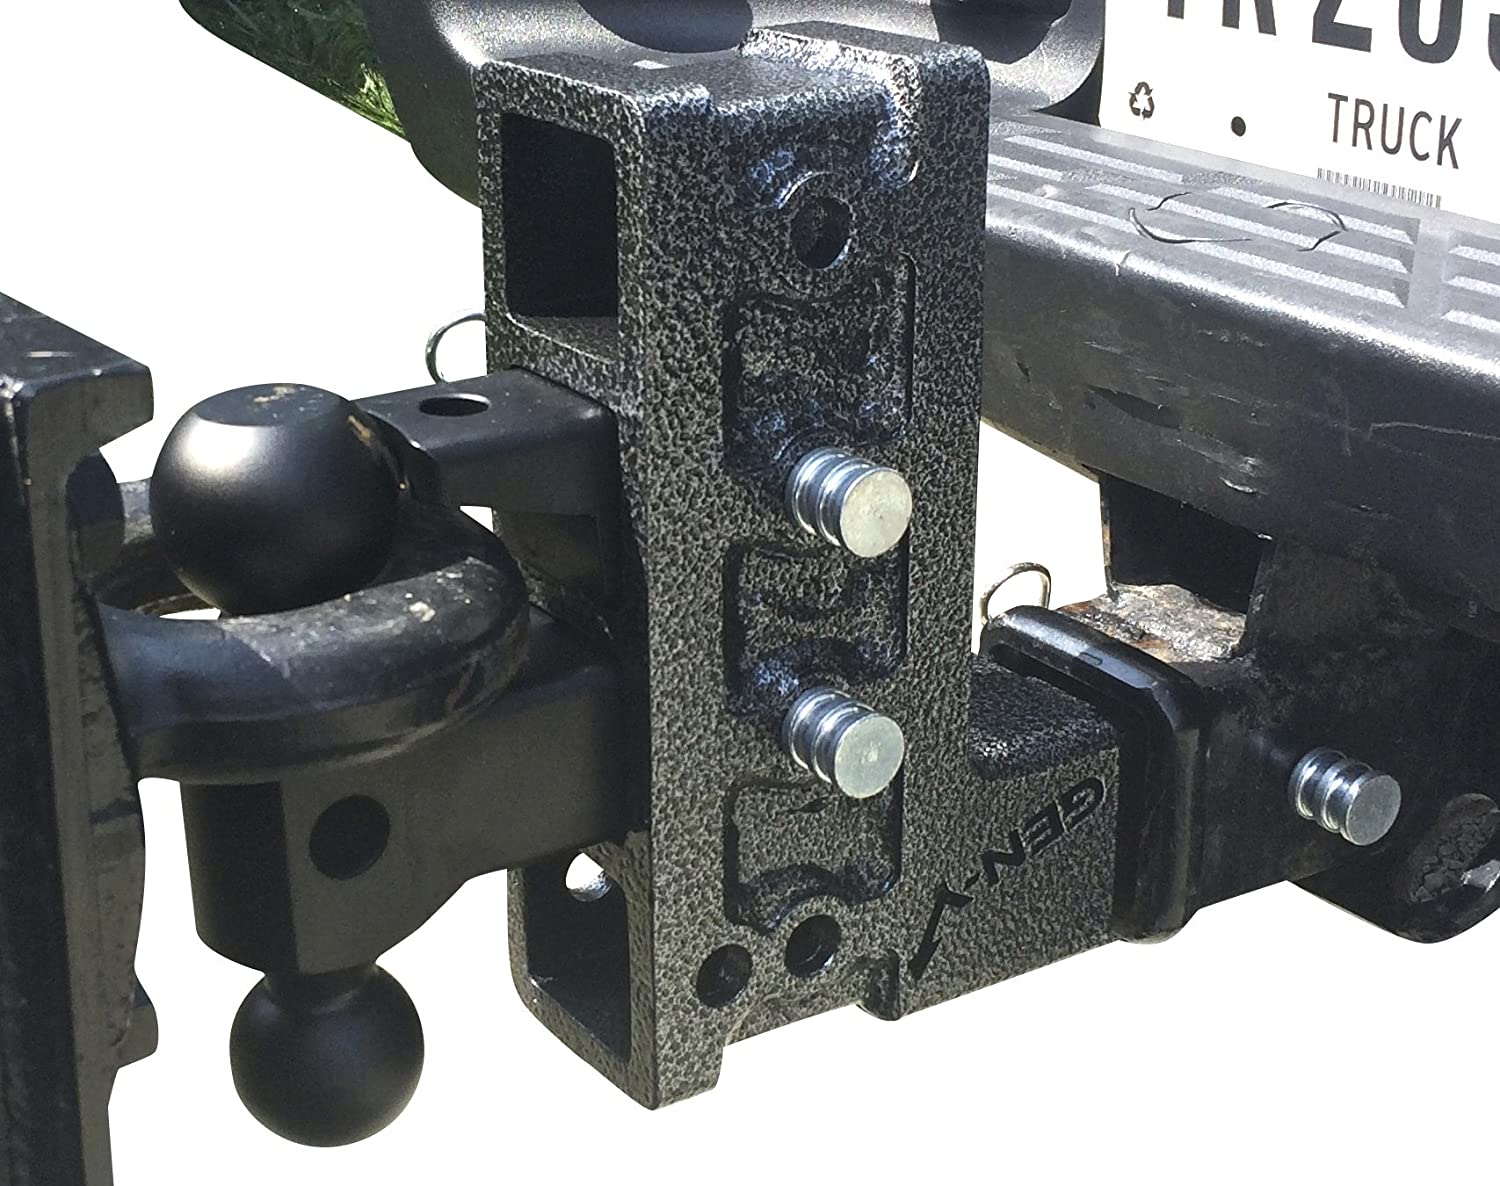 Includes Versa-Ball Mount and Pintle Lock 2000 Pounds Tongue Weight GEN-Y HITCH Mega-Duty Dual Receiver Hitch: Raise or Drop up to 12.5-16,000 Pounds Capacity GH-526